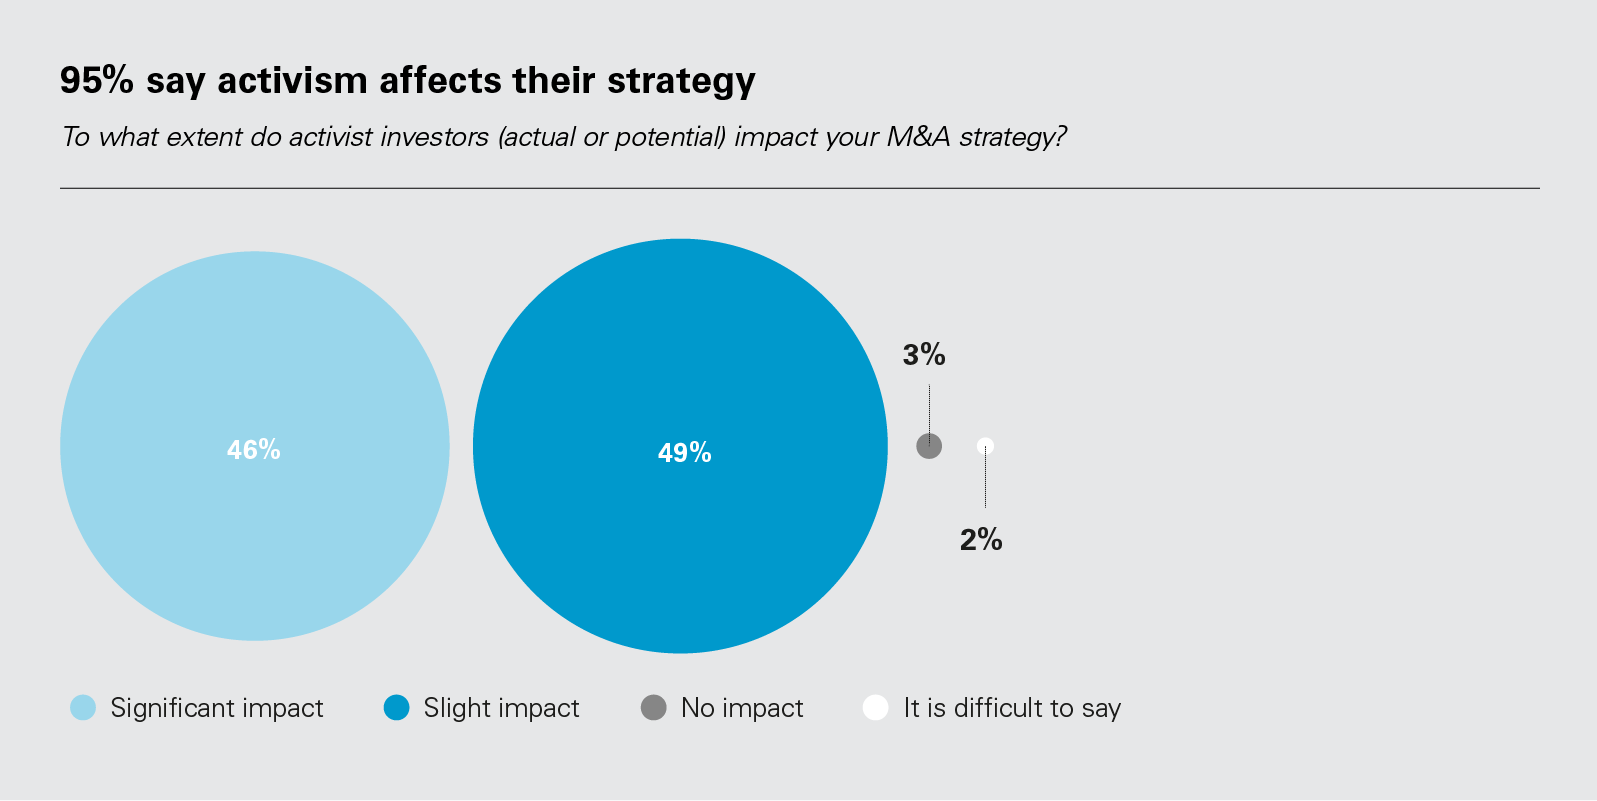 95% say activism affects their strategy